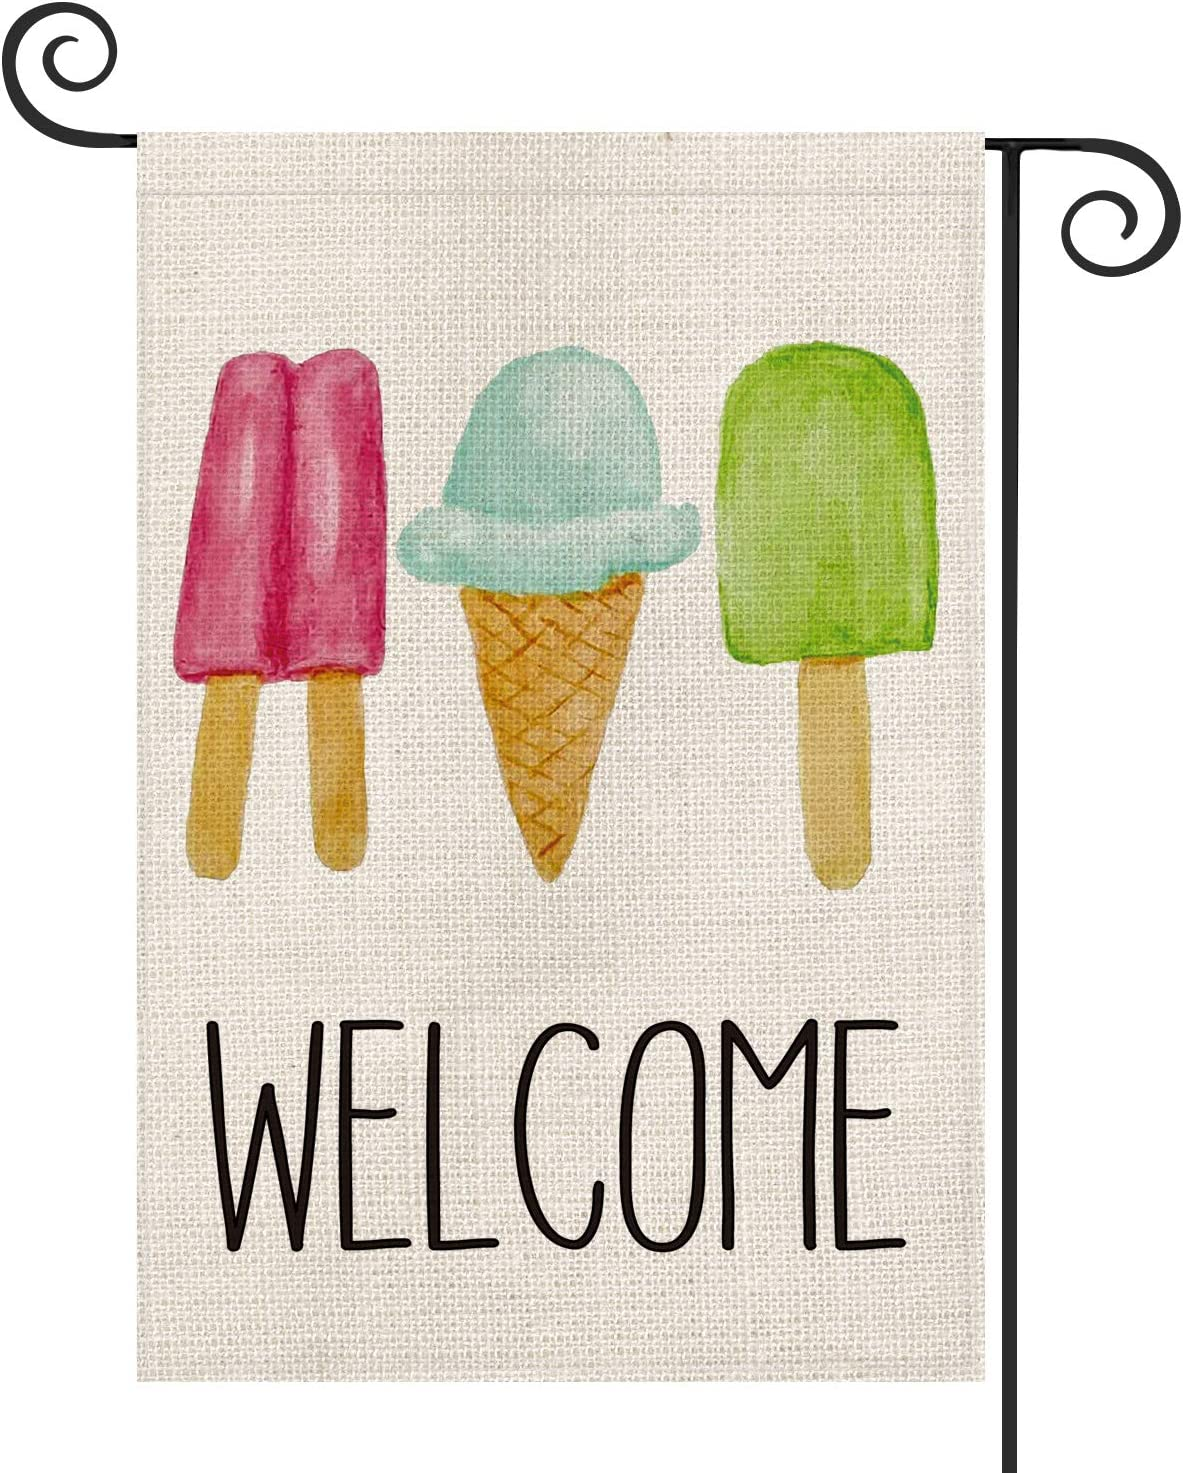 AVOIN Summer Ice Cream Popsicle Cone Garden Flag Vertical Double Sided, Welcome Flag Yard Outdoor Decoration 12.5 x 18 Inch